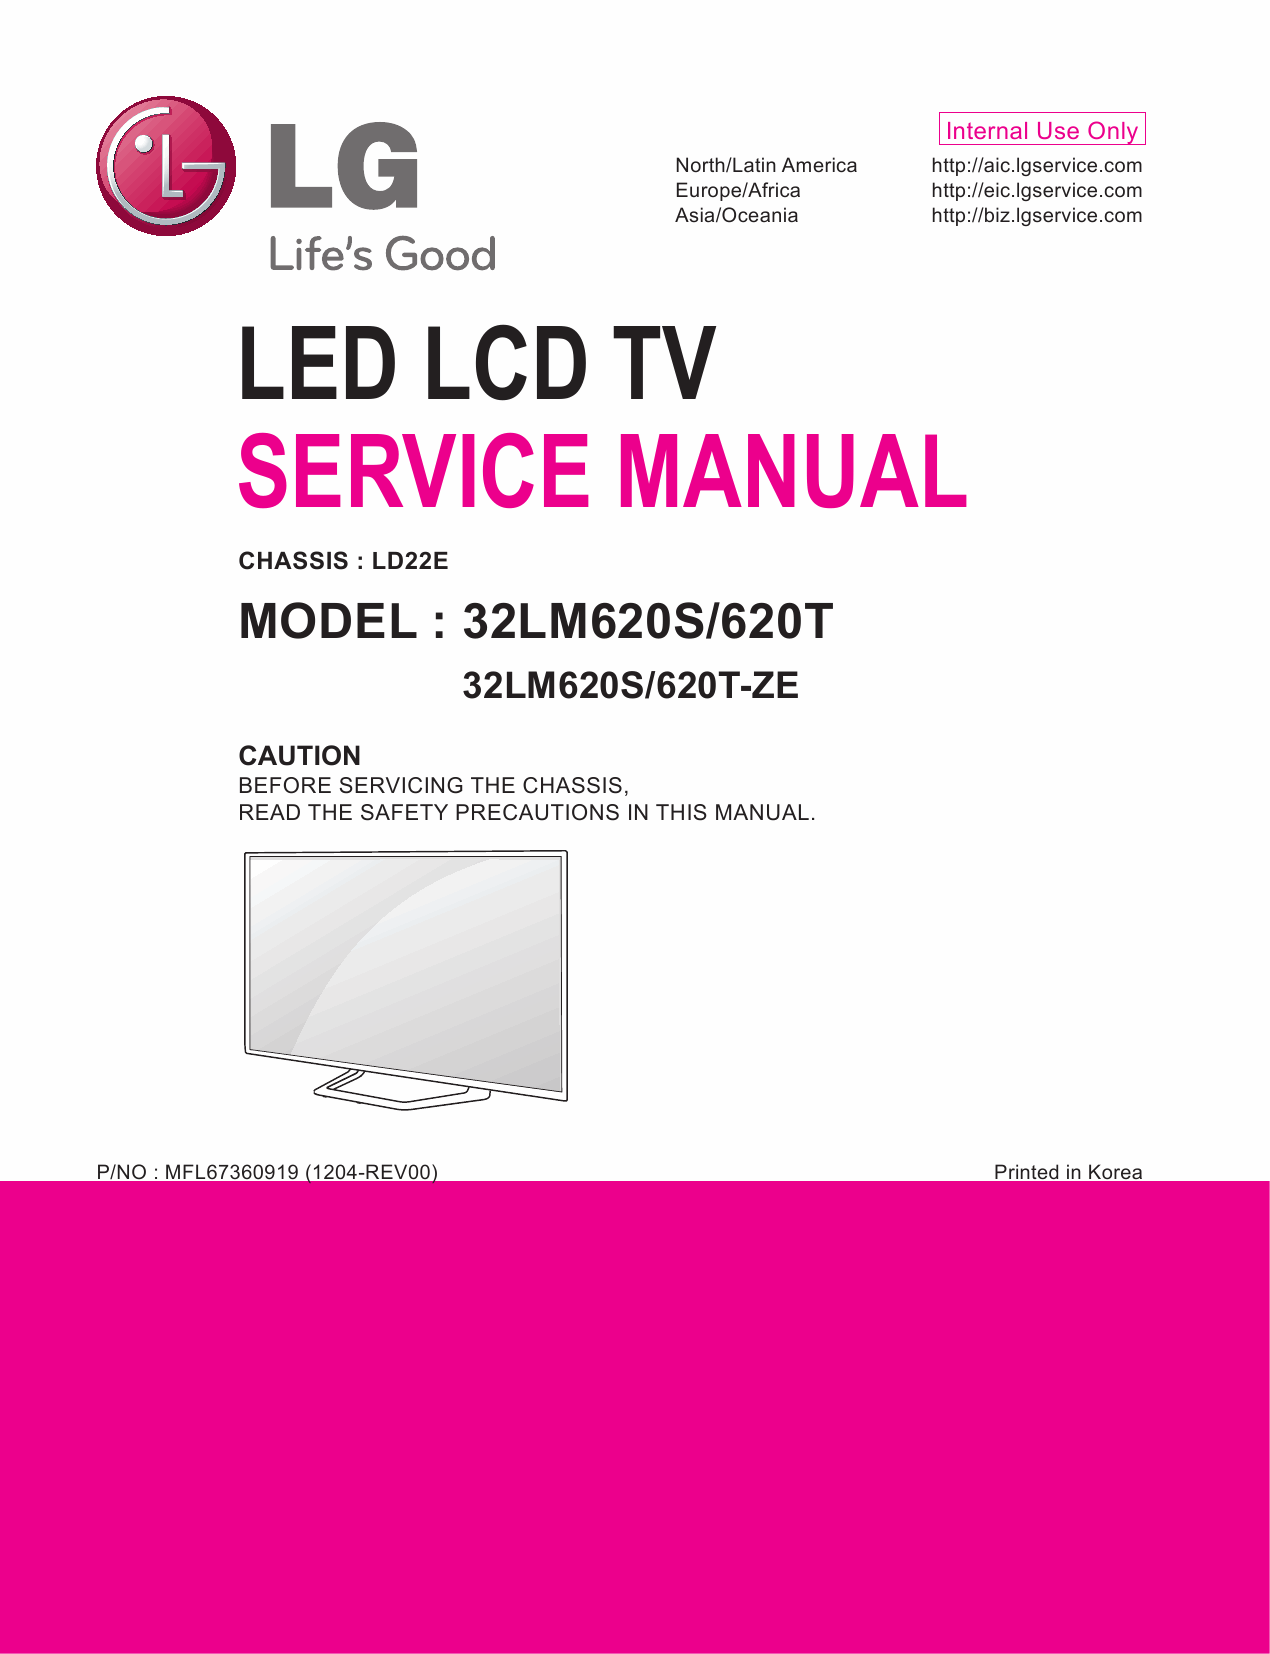 LG_LCD_TV_32LM620S_620T_Service_Manual_2012_Qmanual.com-1